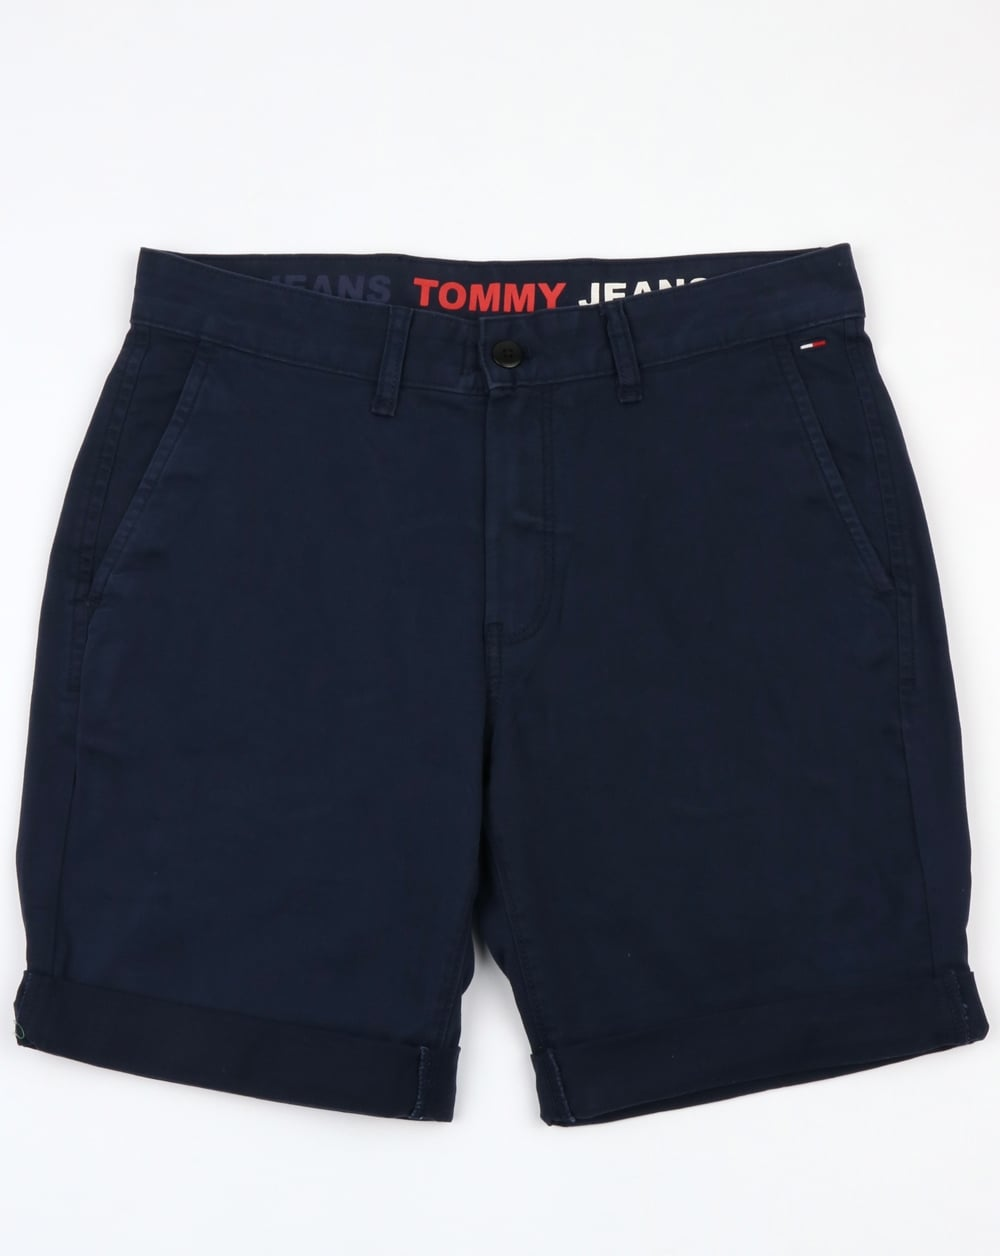 263a7e22 Tommy Hilfiger Freddy Shorts Navy,chino,cotton,smart,mens